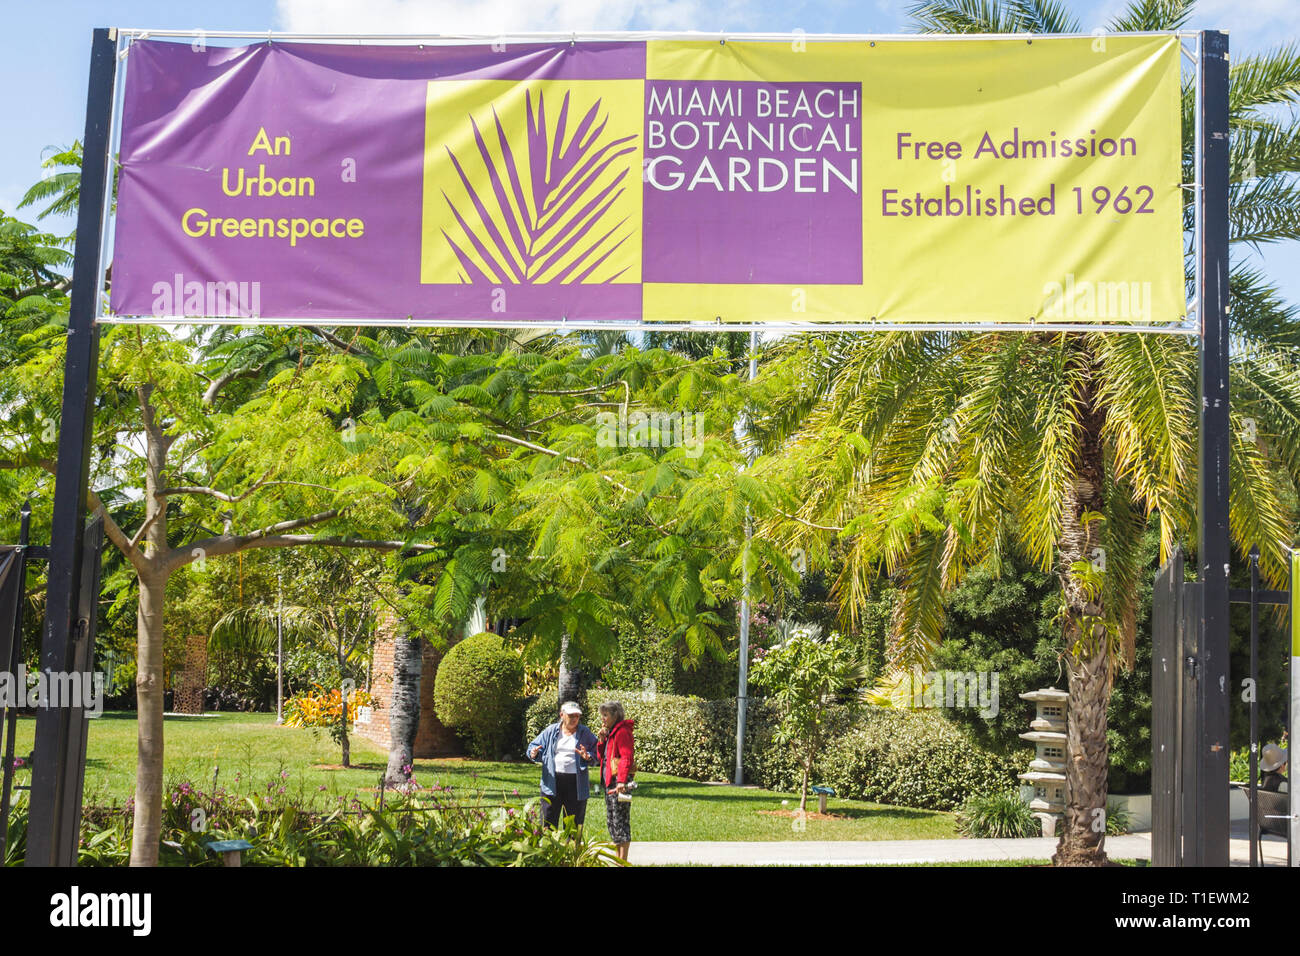 Florida Fl South Miami Beach Sobe Miami Beach Botanical Garden Gardening Plants Trees Horticulture Entrance Front Adult Adults Woman Women Stock Photo Alamy